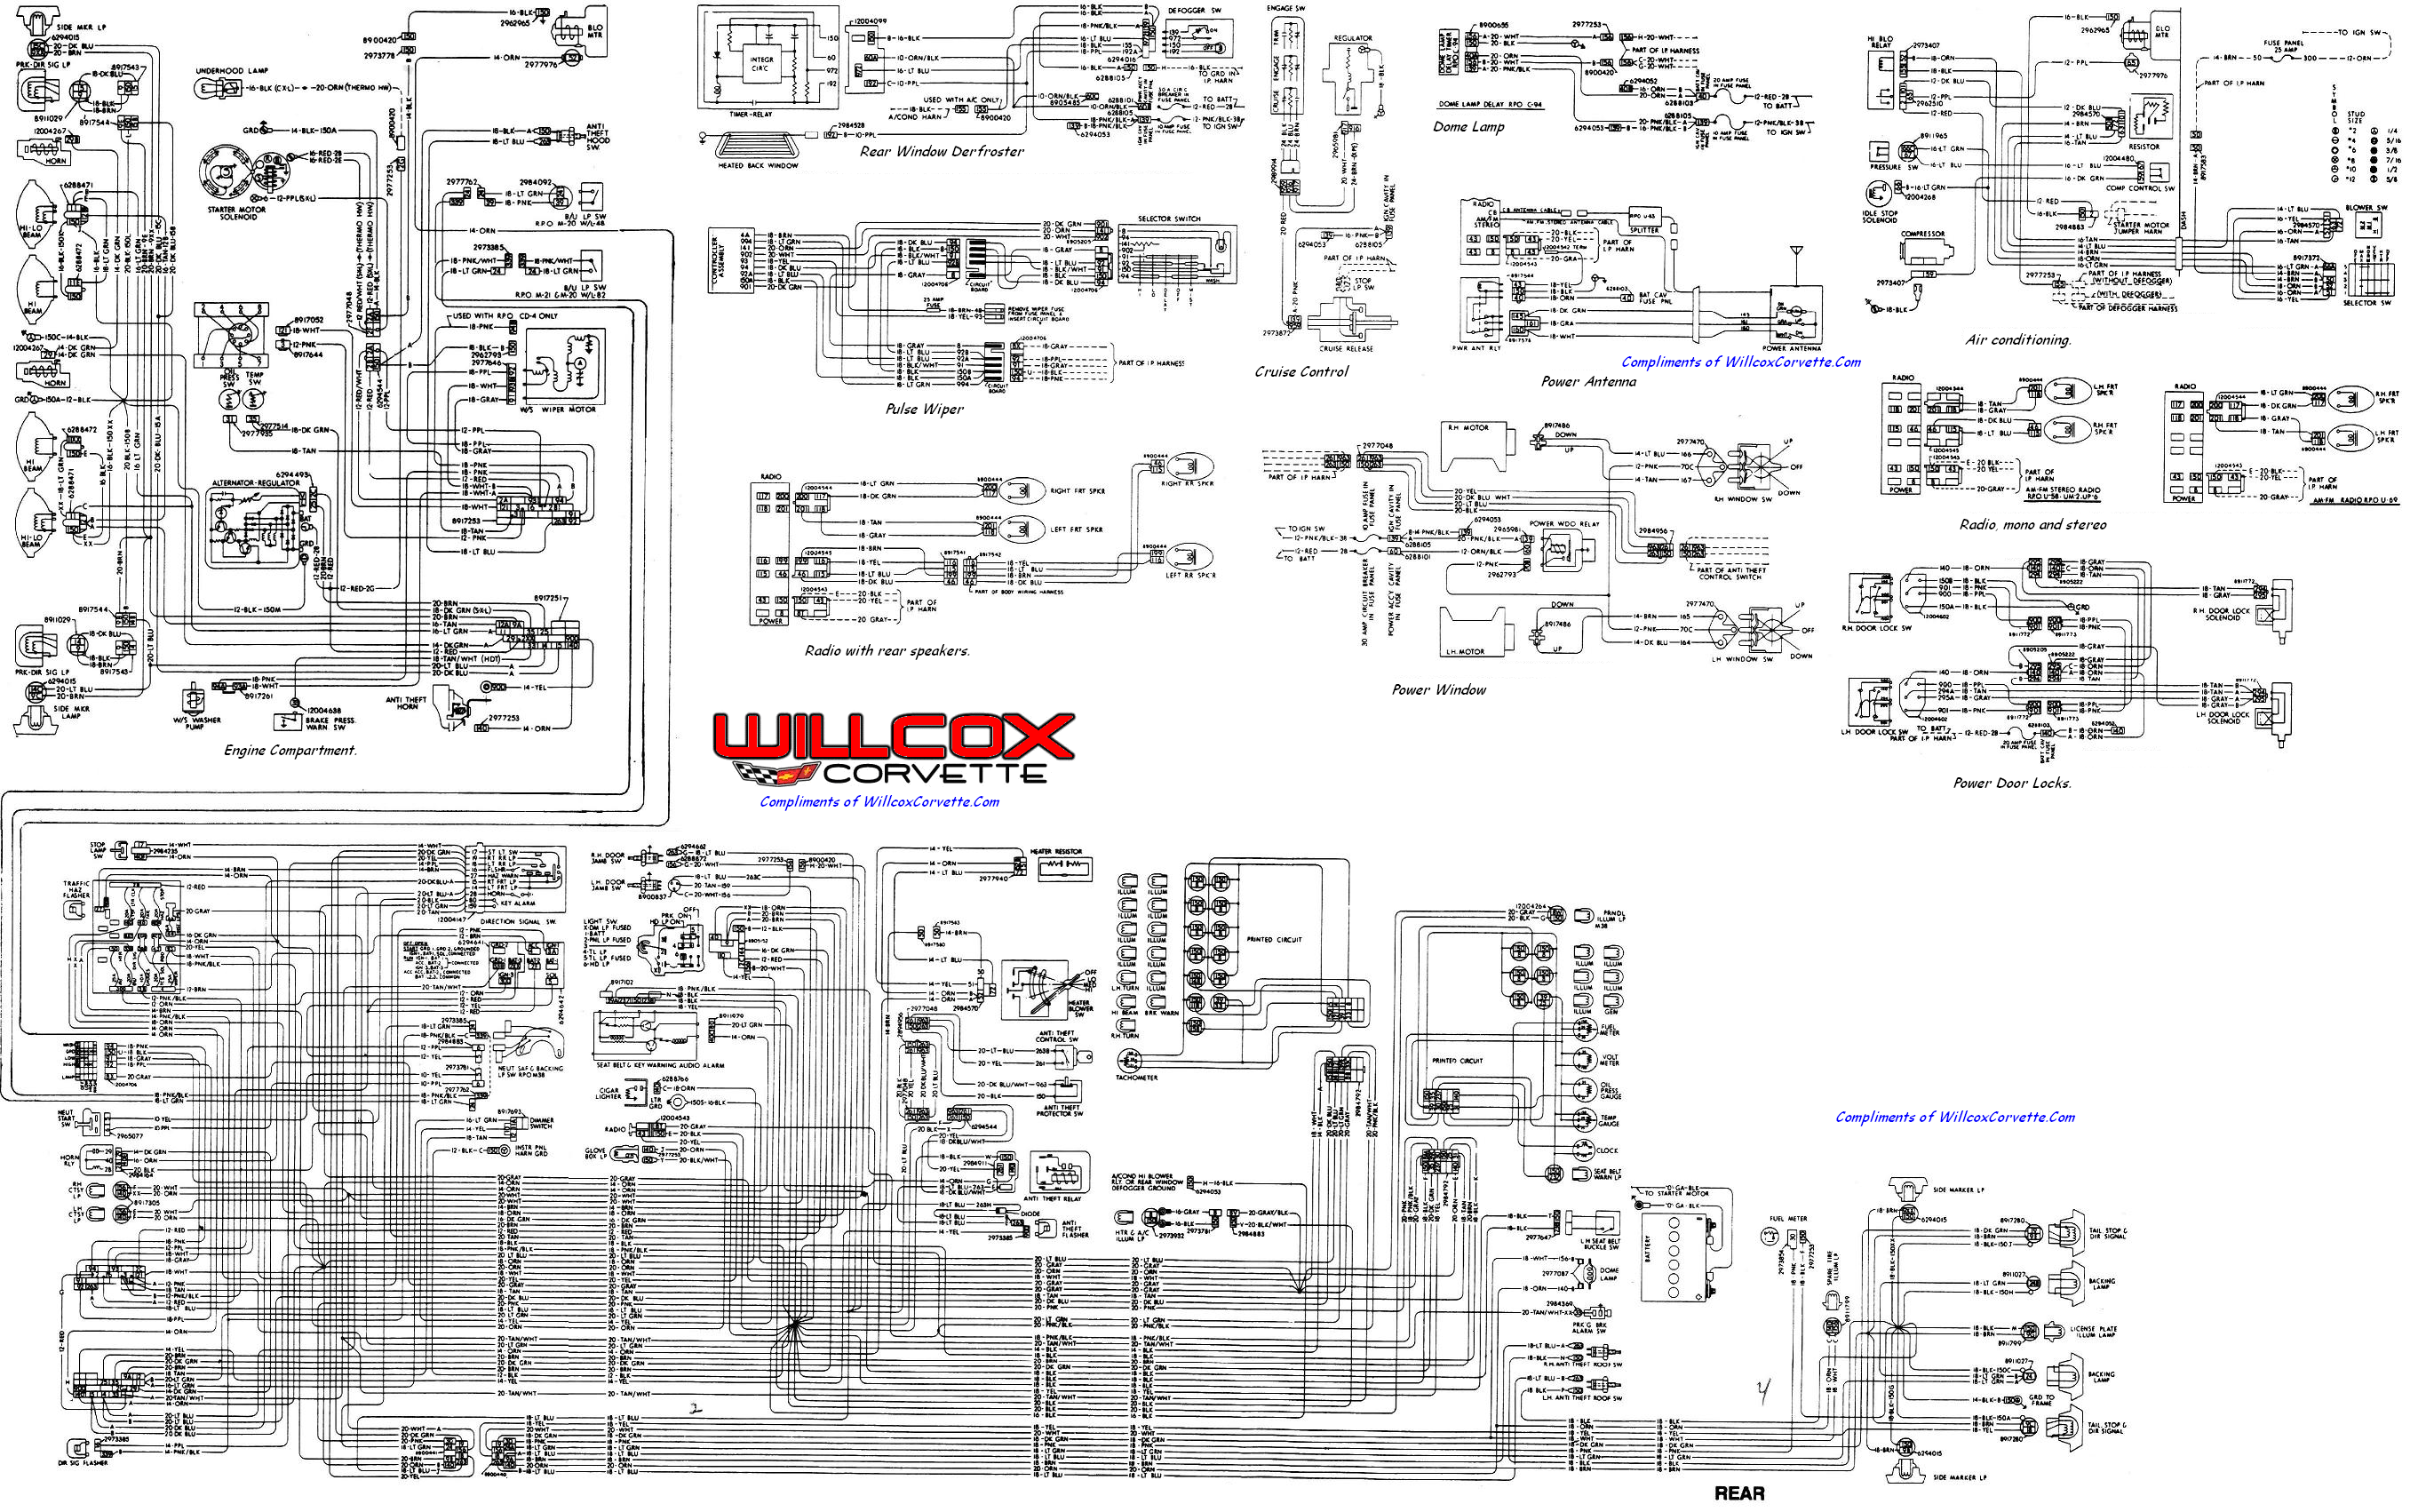 Brilliant 1959 Corvette Fuse Box Wiring Diagram Wiring Cloud Licukosporaidewilluminateatxorg